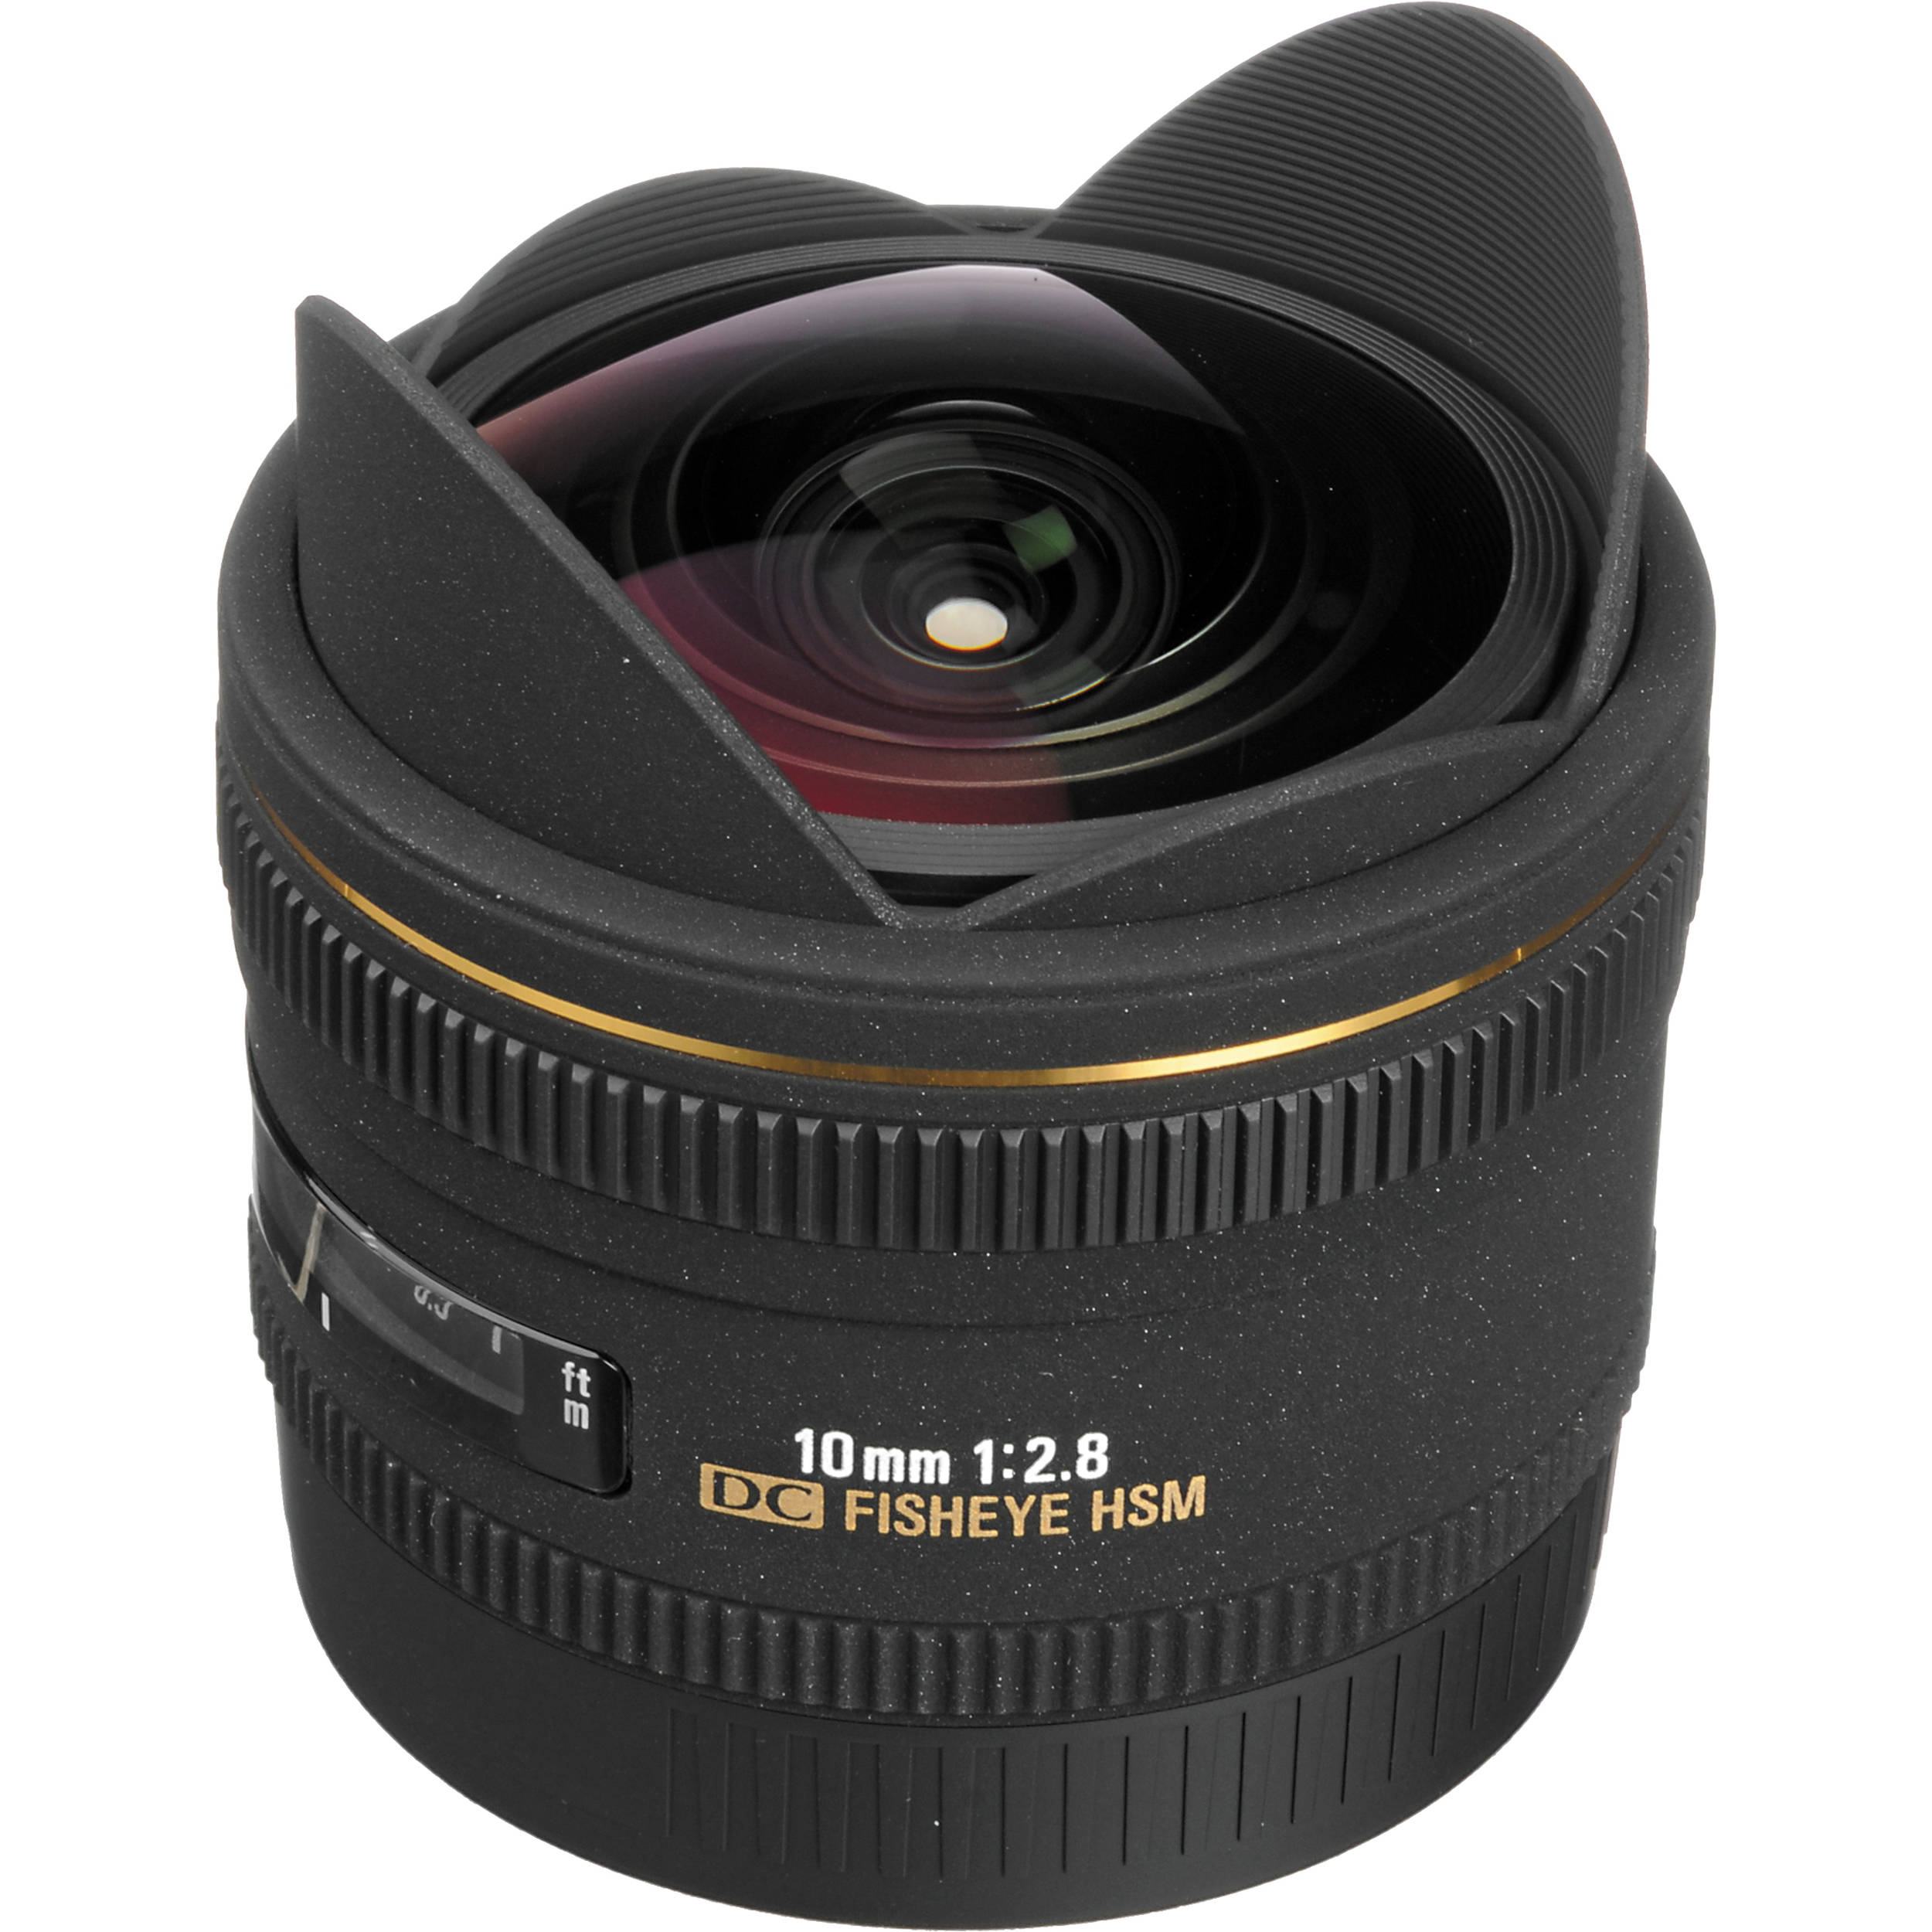 Image of Sigma 10mm f/2.8 EX DC Fisheye HSM Lens For Nikon Mount